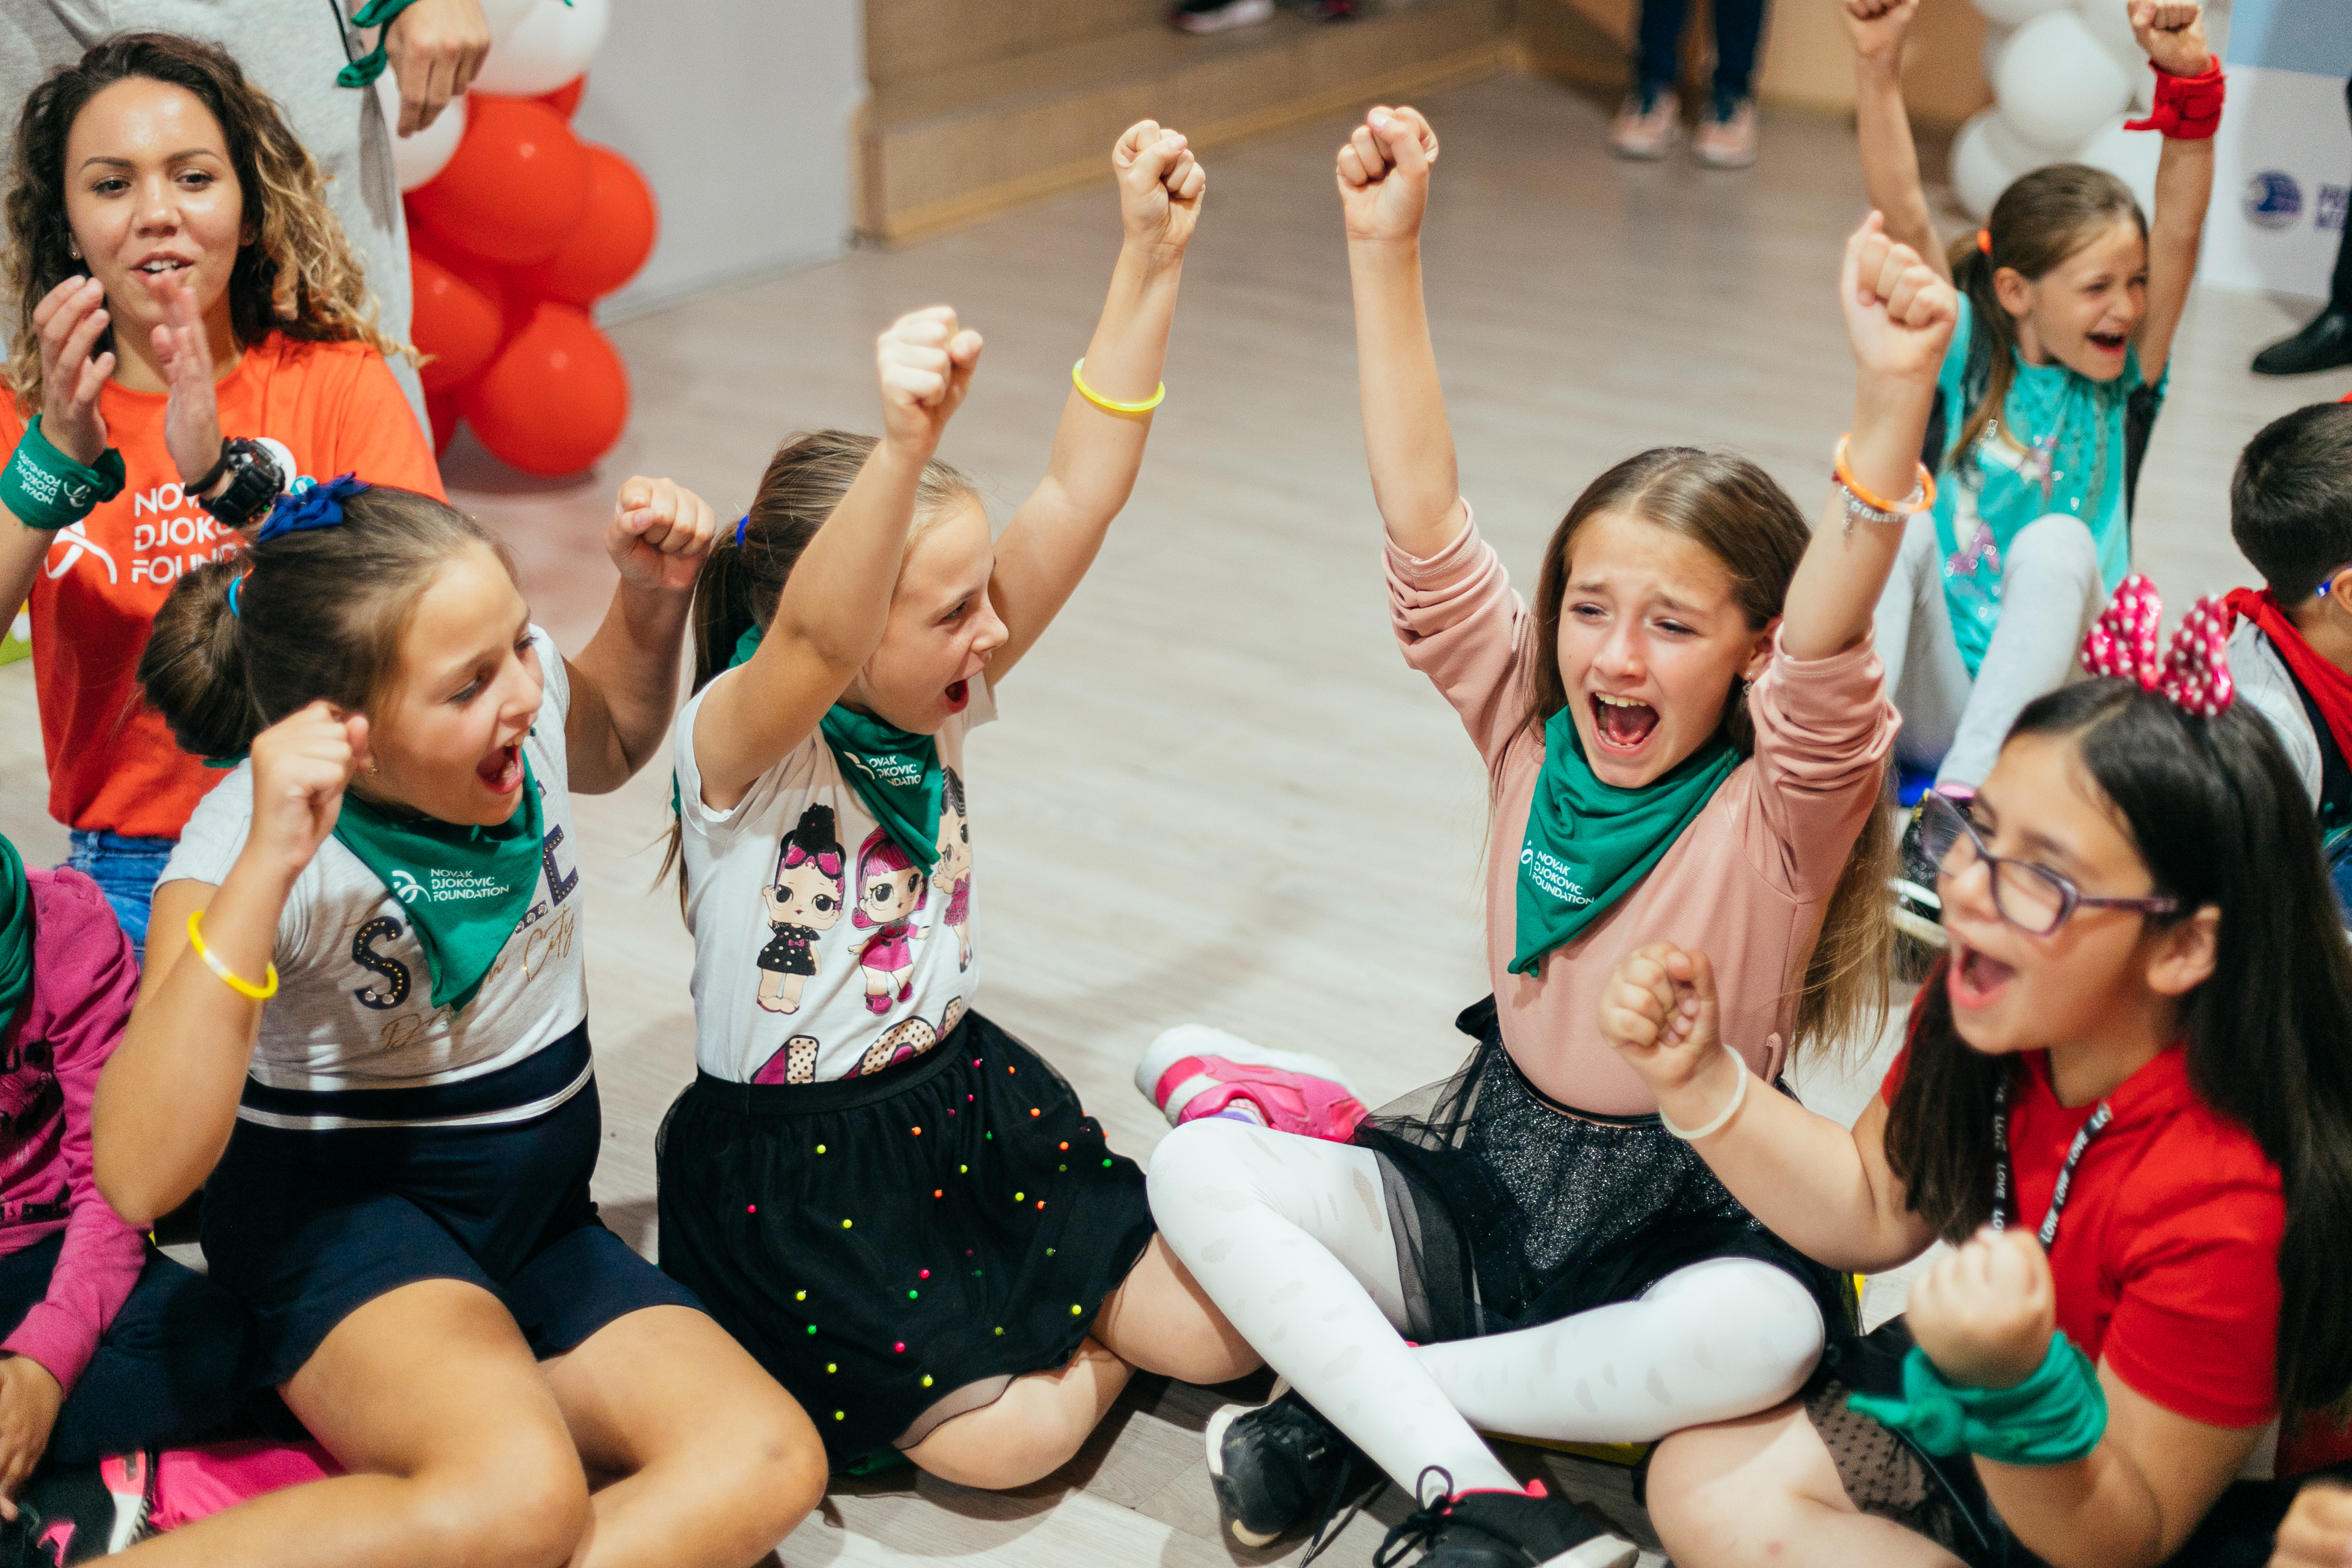 It is this kind of children's joy that motivates us to carry out our Friendship Games camp and to take children from rural areas on an unforgettable adventure in nature.